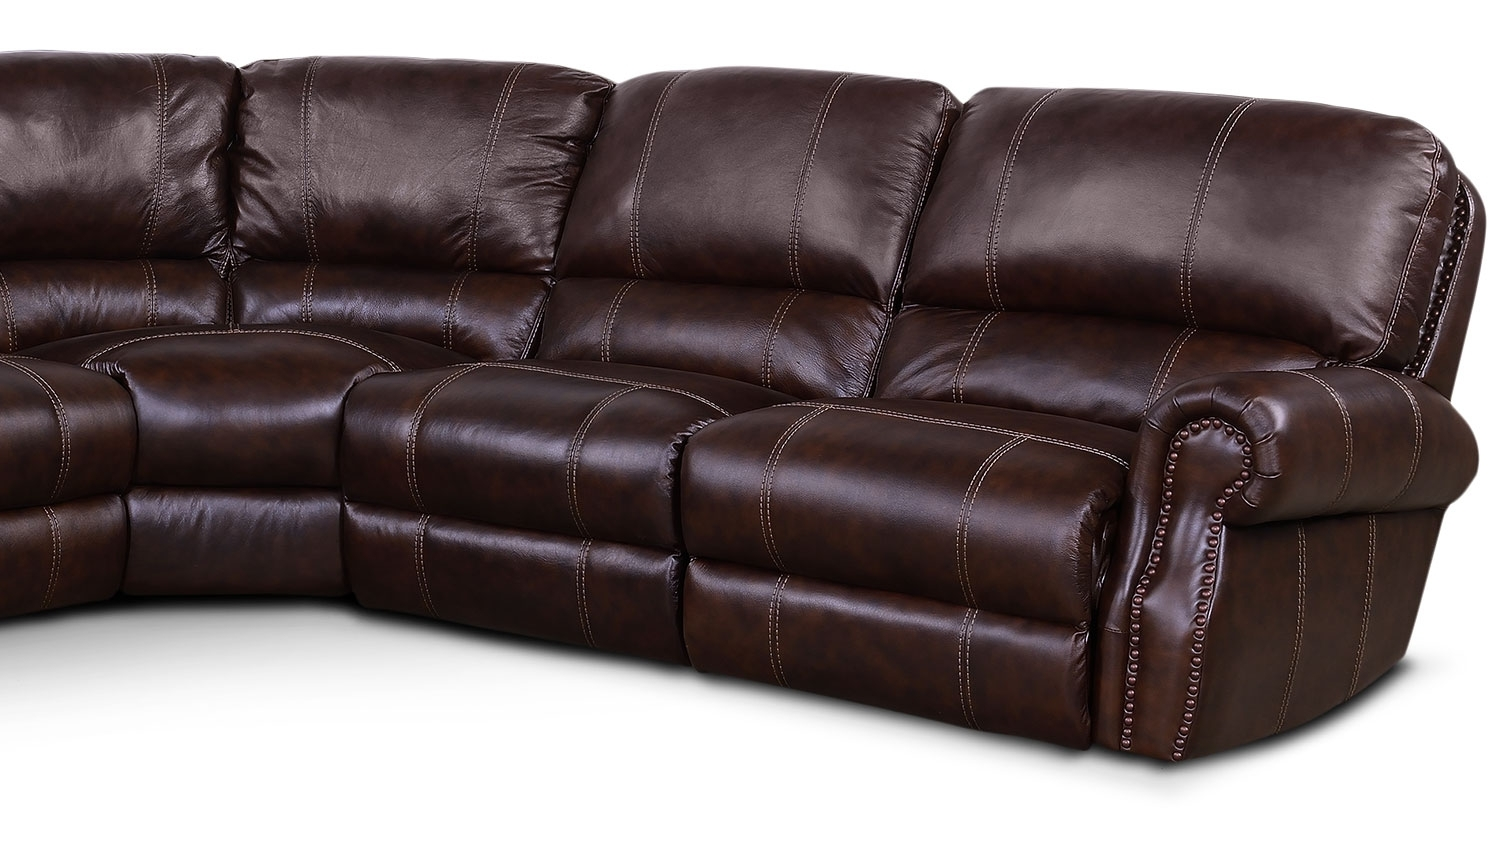 Dartmouth 6-Piece Power Reclining Sectional W/ Left-Facing Chaise pertaining to Norfolk Chocolate 3 Piece Sectionals With Raf Chaise (Image 9 of 30)